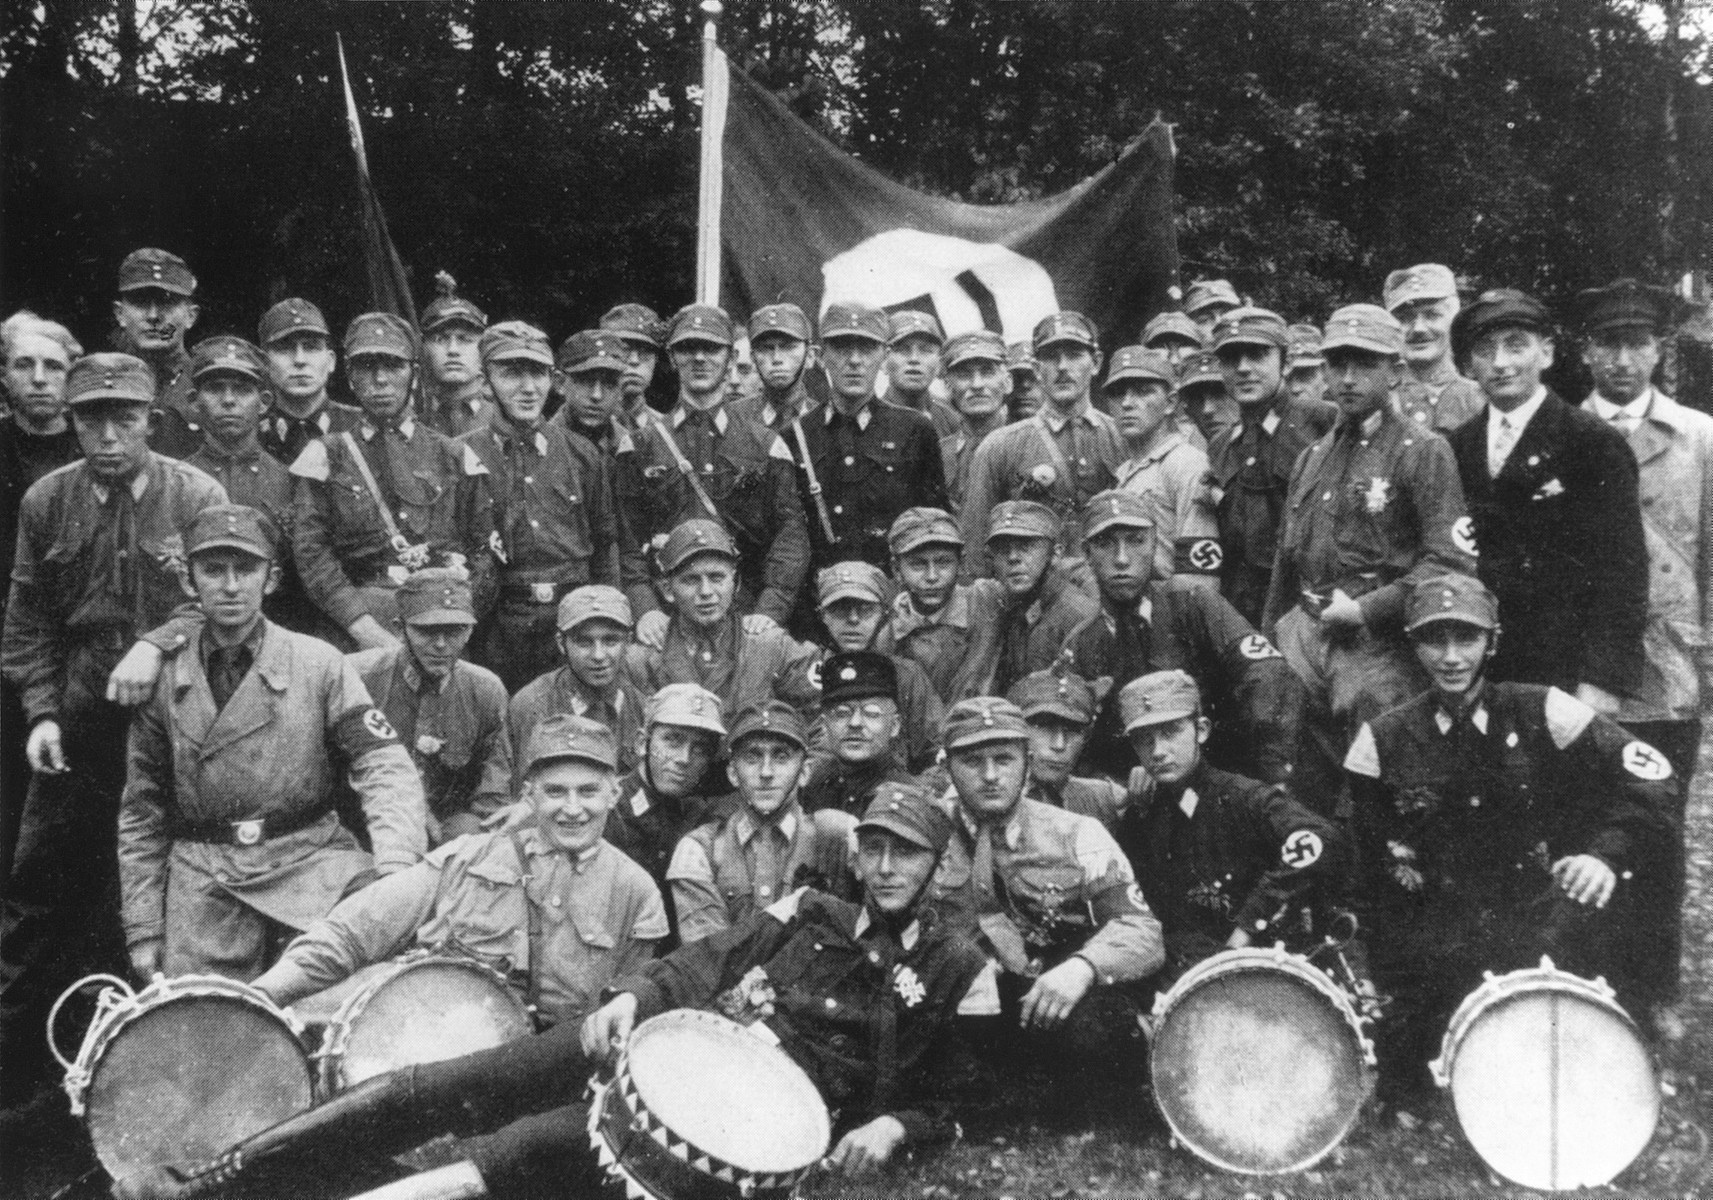 Group portrait of members of a Pomeranian SA unit at a rally in Jarmen.